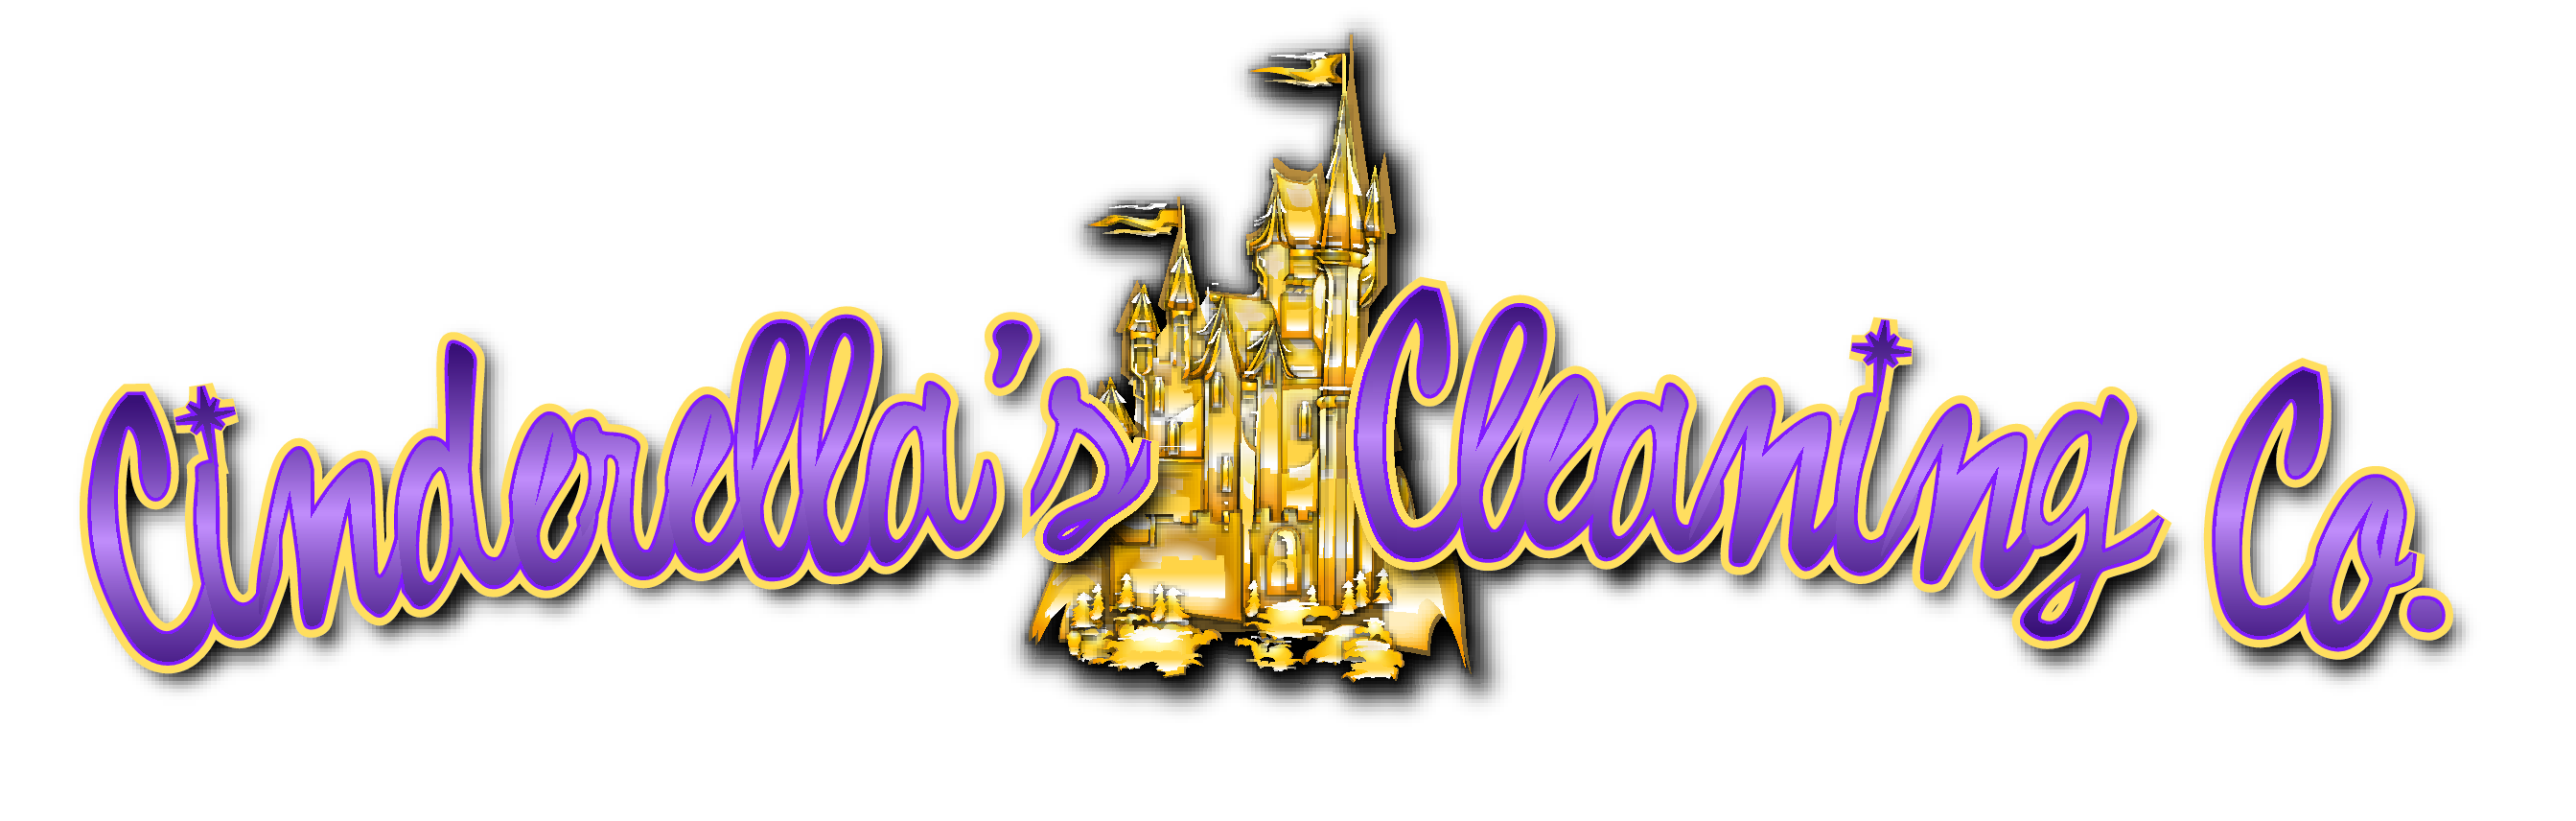 Cinderella's Cleaning Company